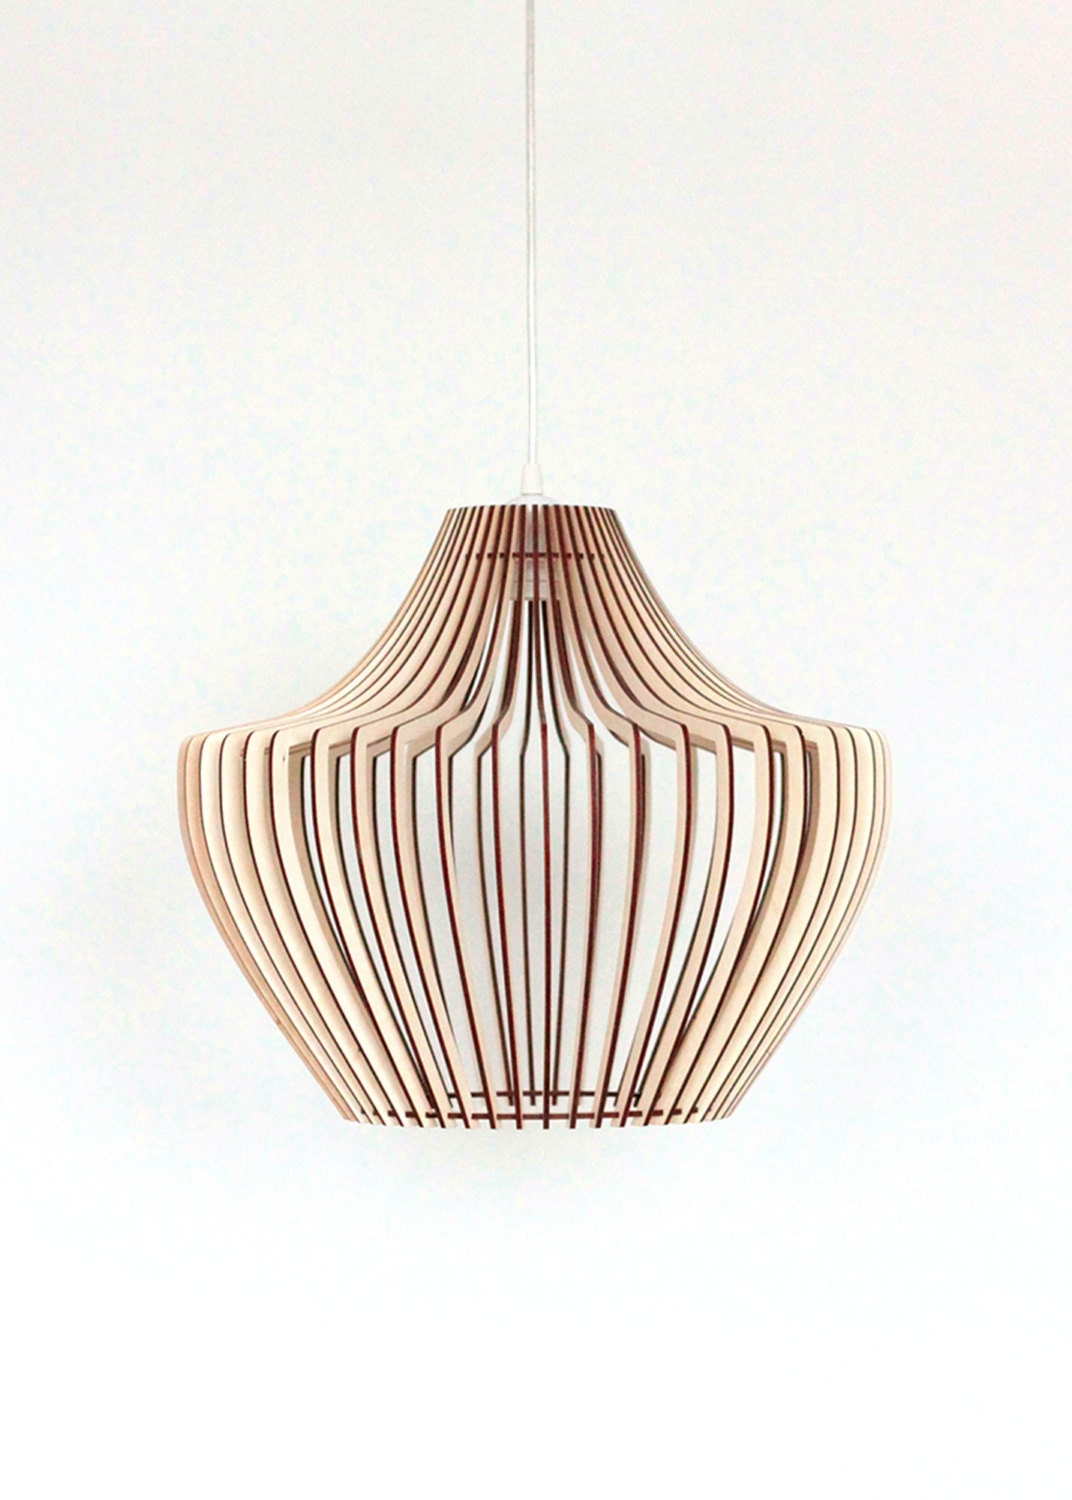 Wood Lamp / Wooden Lamp Shade / Hanging Lamp / Pendant Light / Decorative Ceiling Lamp / Modern ...